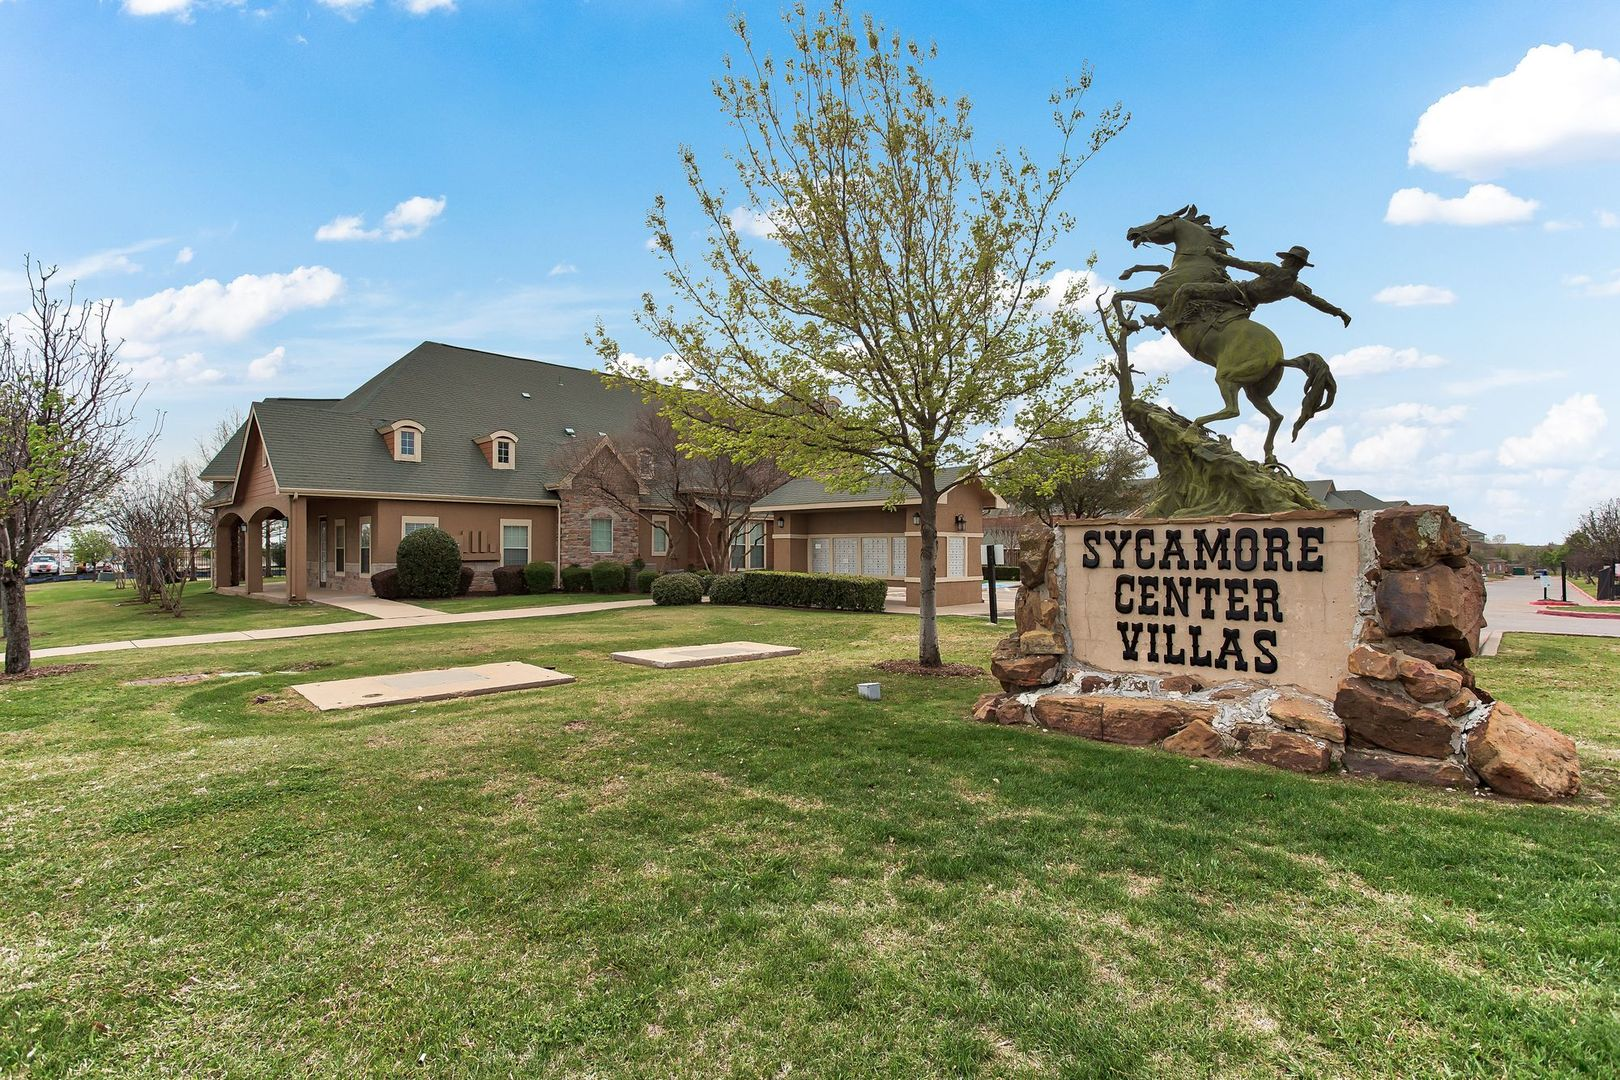 Image of Sycamore Center Villas